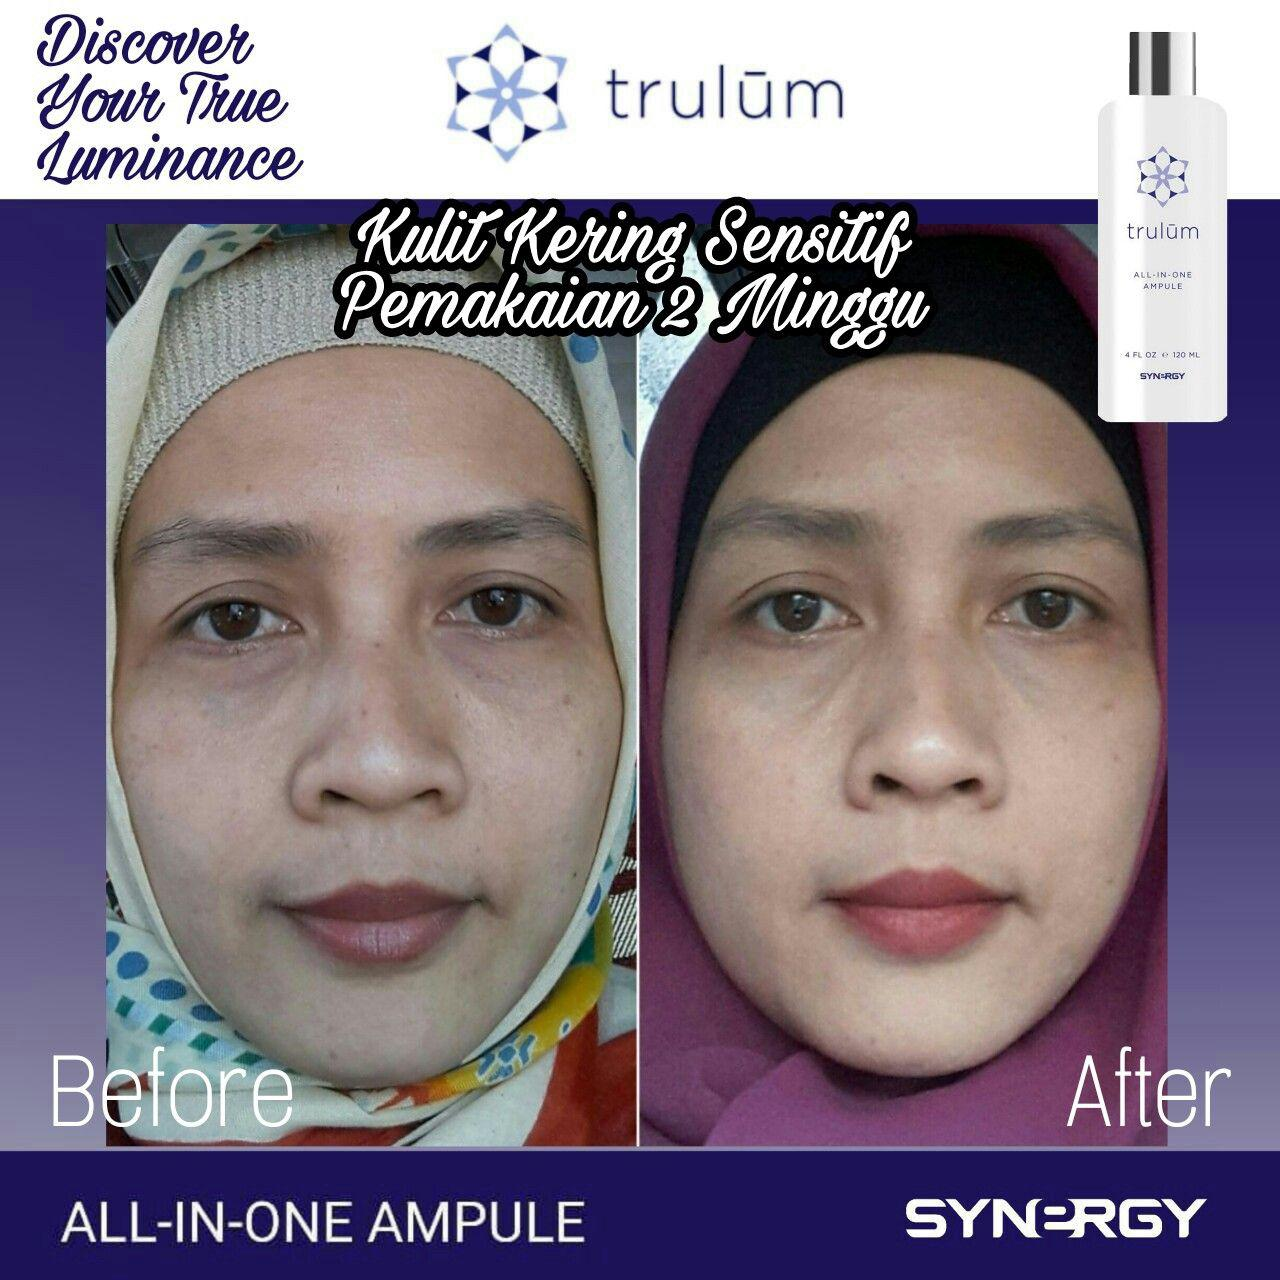 Jual Trulum All In One Ampoule Di Labuan WA: 08112338376